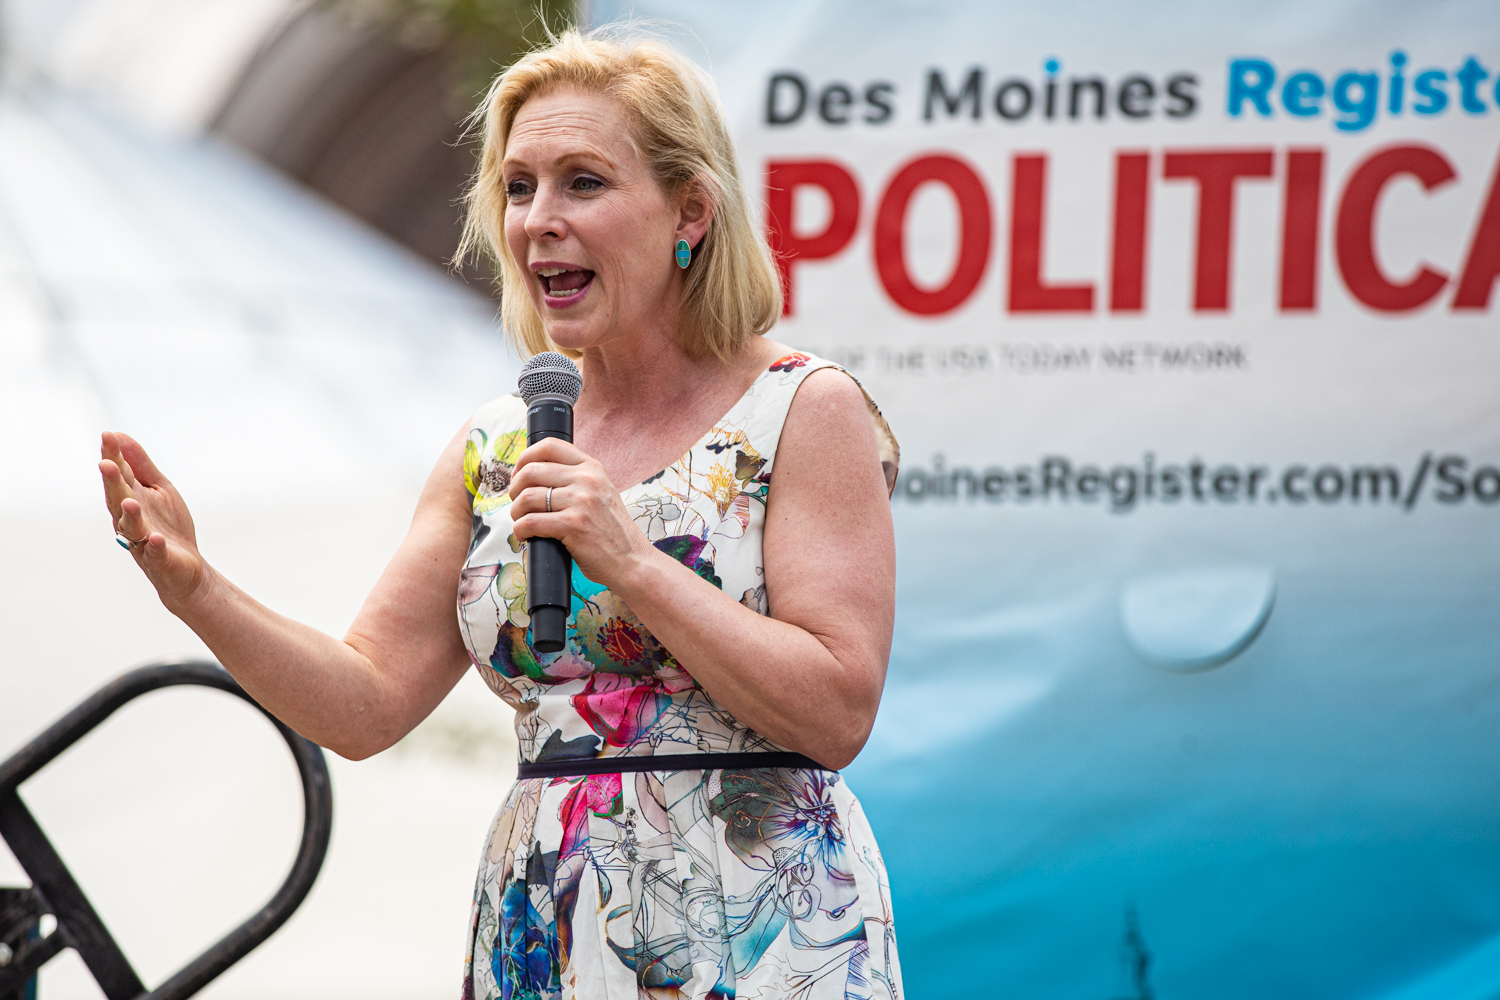 Sen. Kirsten Gillibrand, D-NY., speaks at the Des Moines Register Political Soapbox during the Iowa State Fair in Des Moines, IA on Saturday, August 10, 2019.